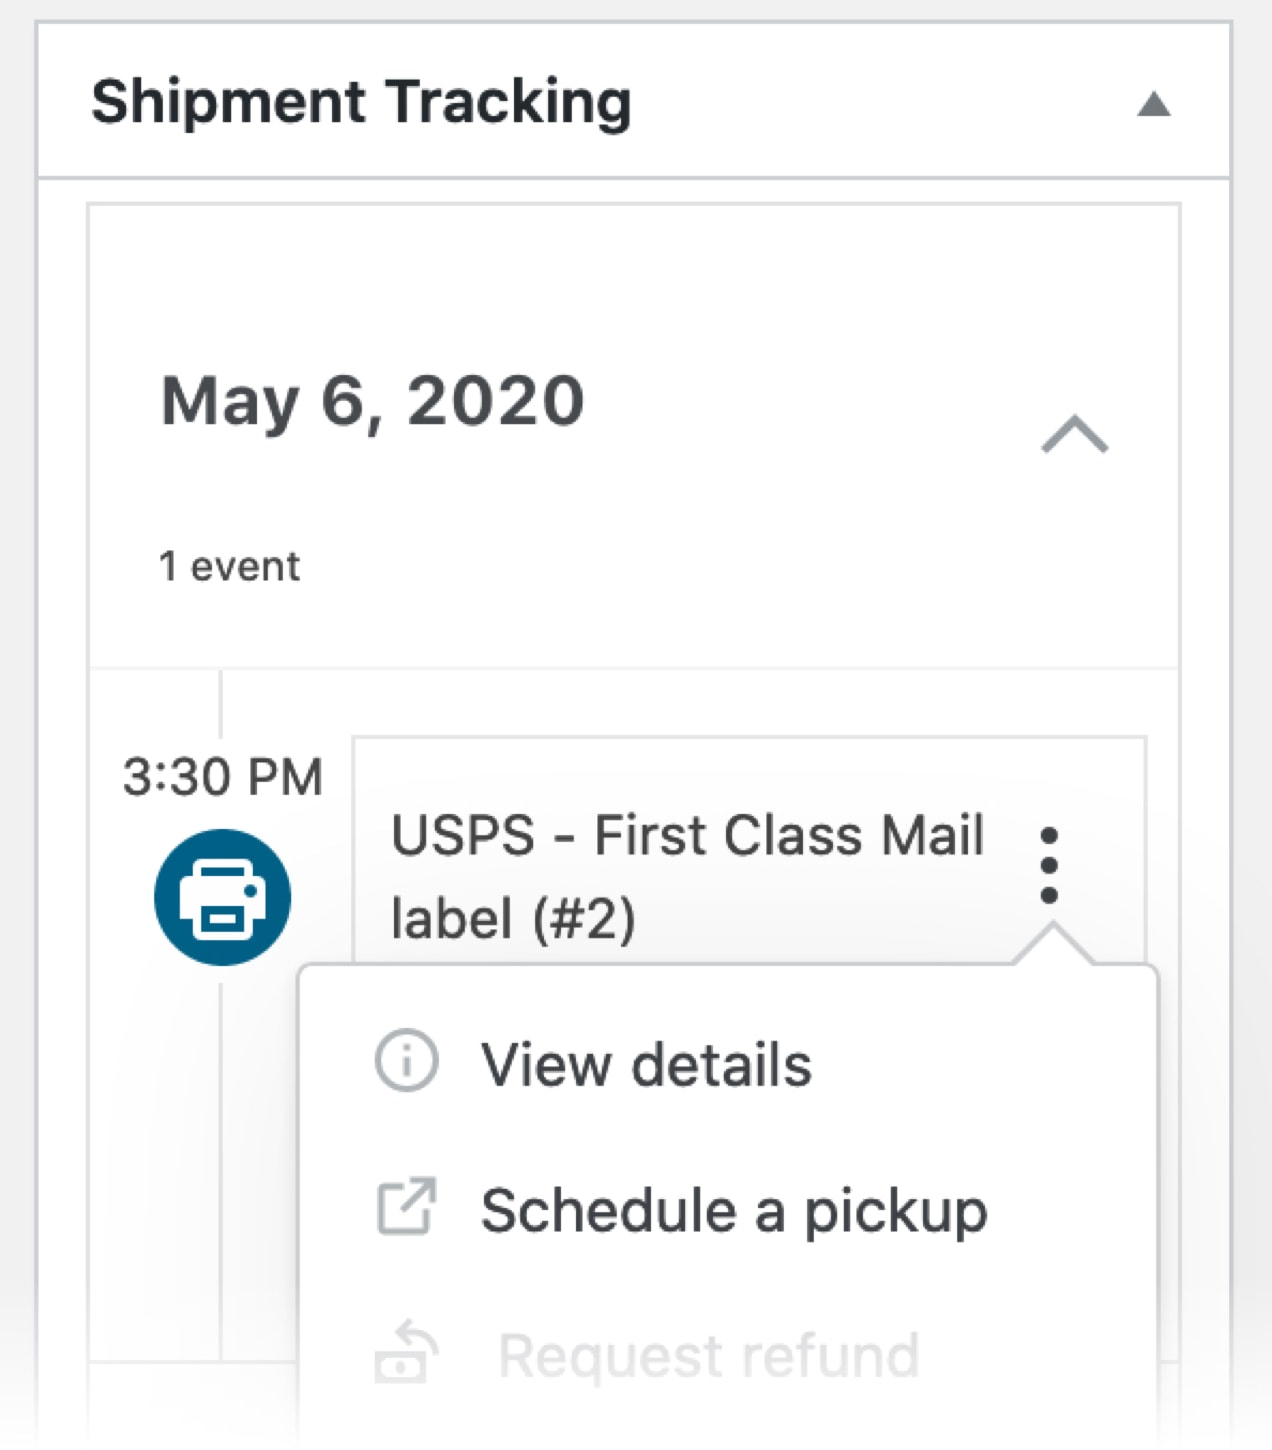 schedule a pickup dropdown on the order page